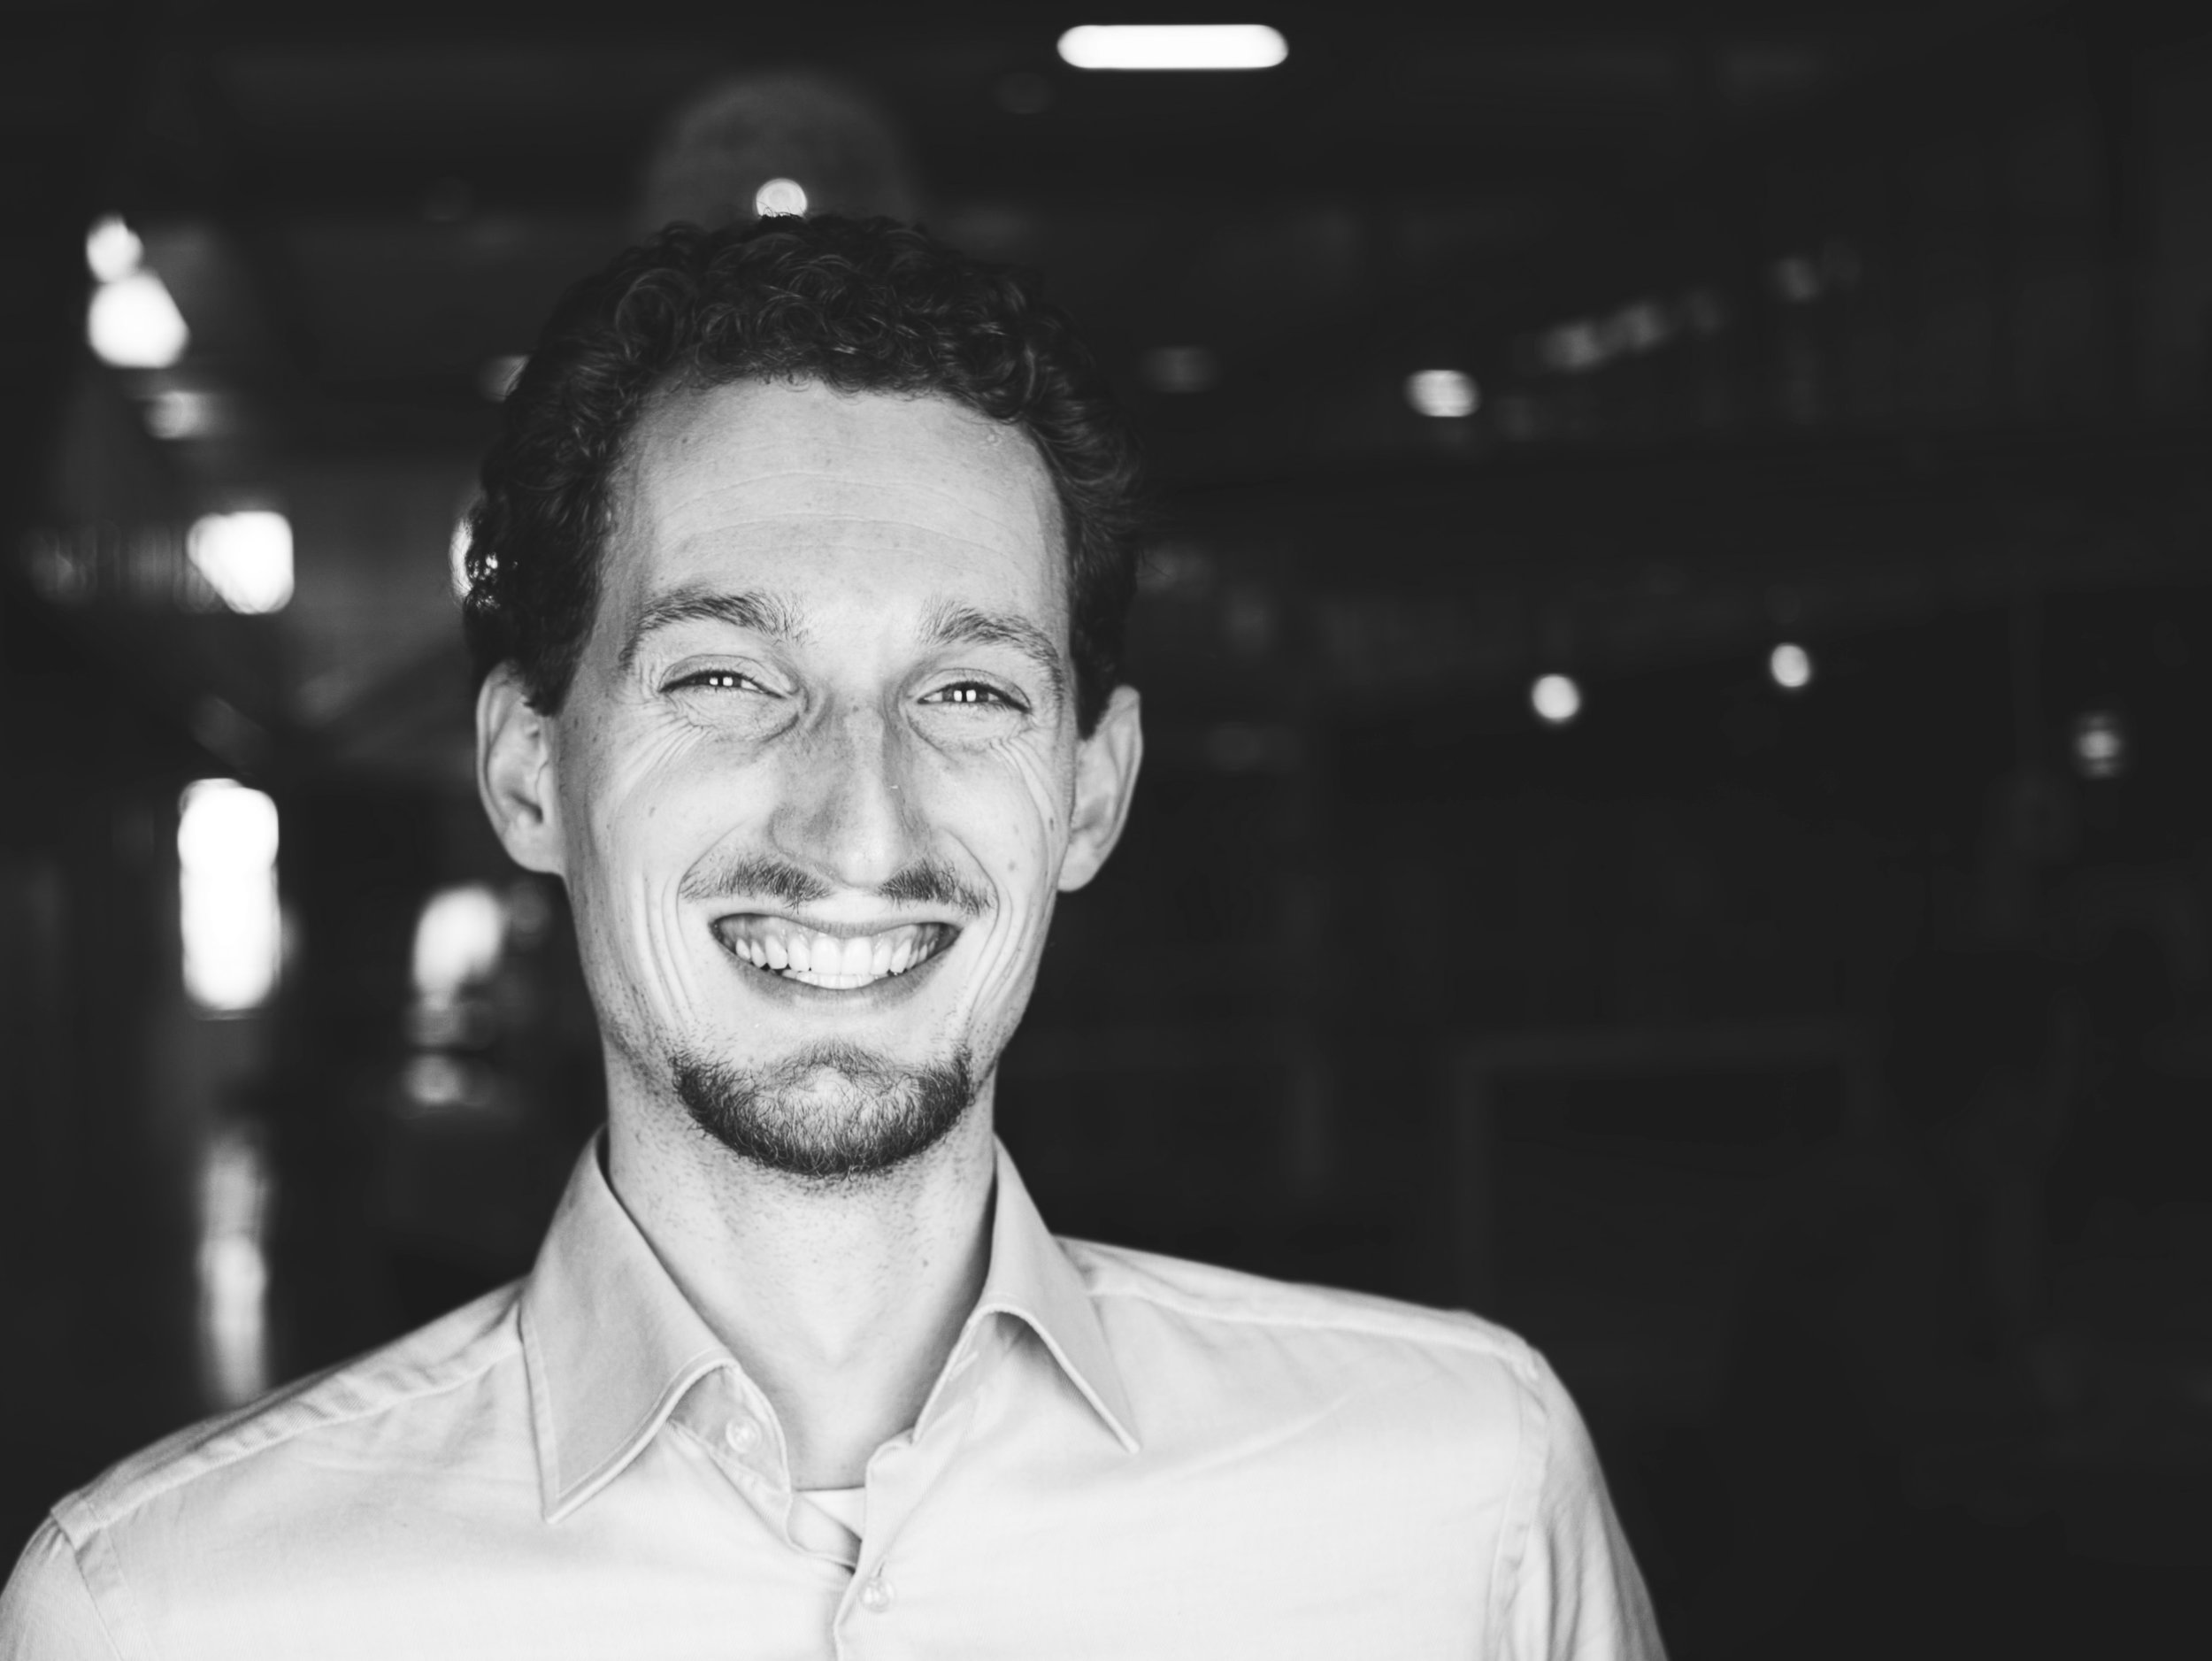 Tim de Jong - Developer - Tim is a game and media expert with roots in the universities of Utrecht and Delft. He found himself with an aptitude and passion for all things blockchain. As a true table tennis fanatic, he does not let up on people. Always concerned with the little details, Tim drives others and himself to always bring their A-game.